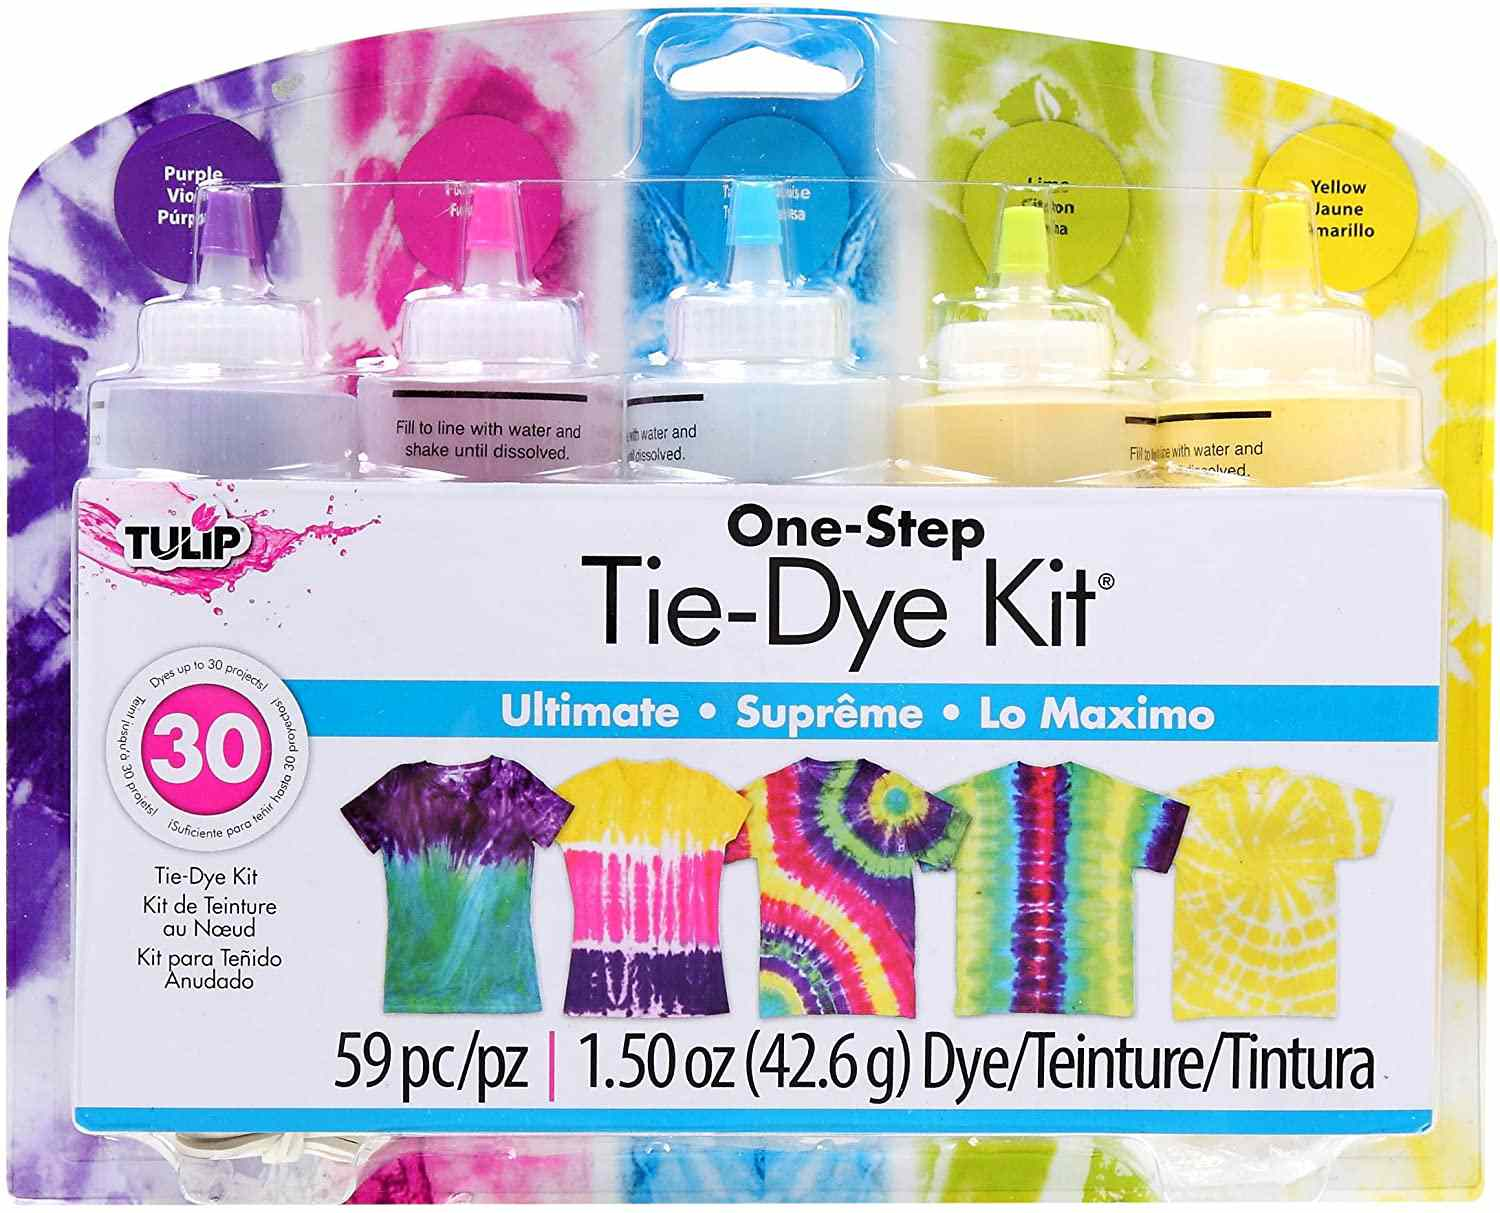 Tulip One-Step 5 Color Tie-Dye Kits Ultimate